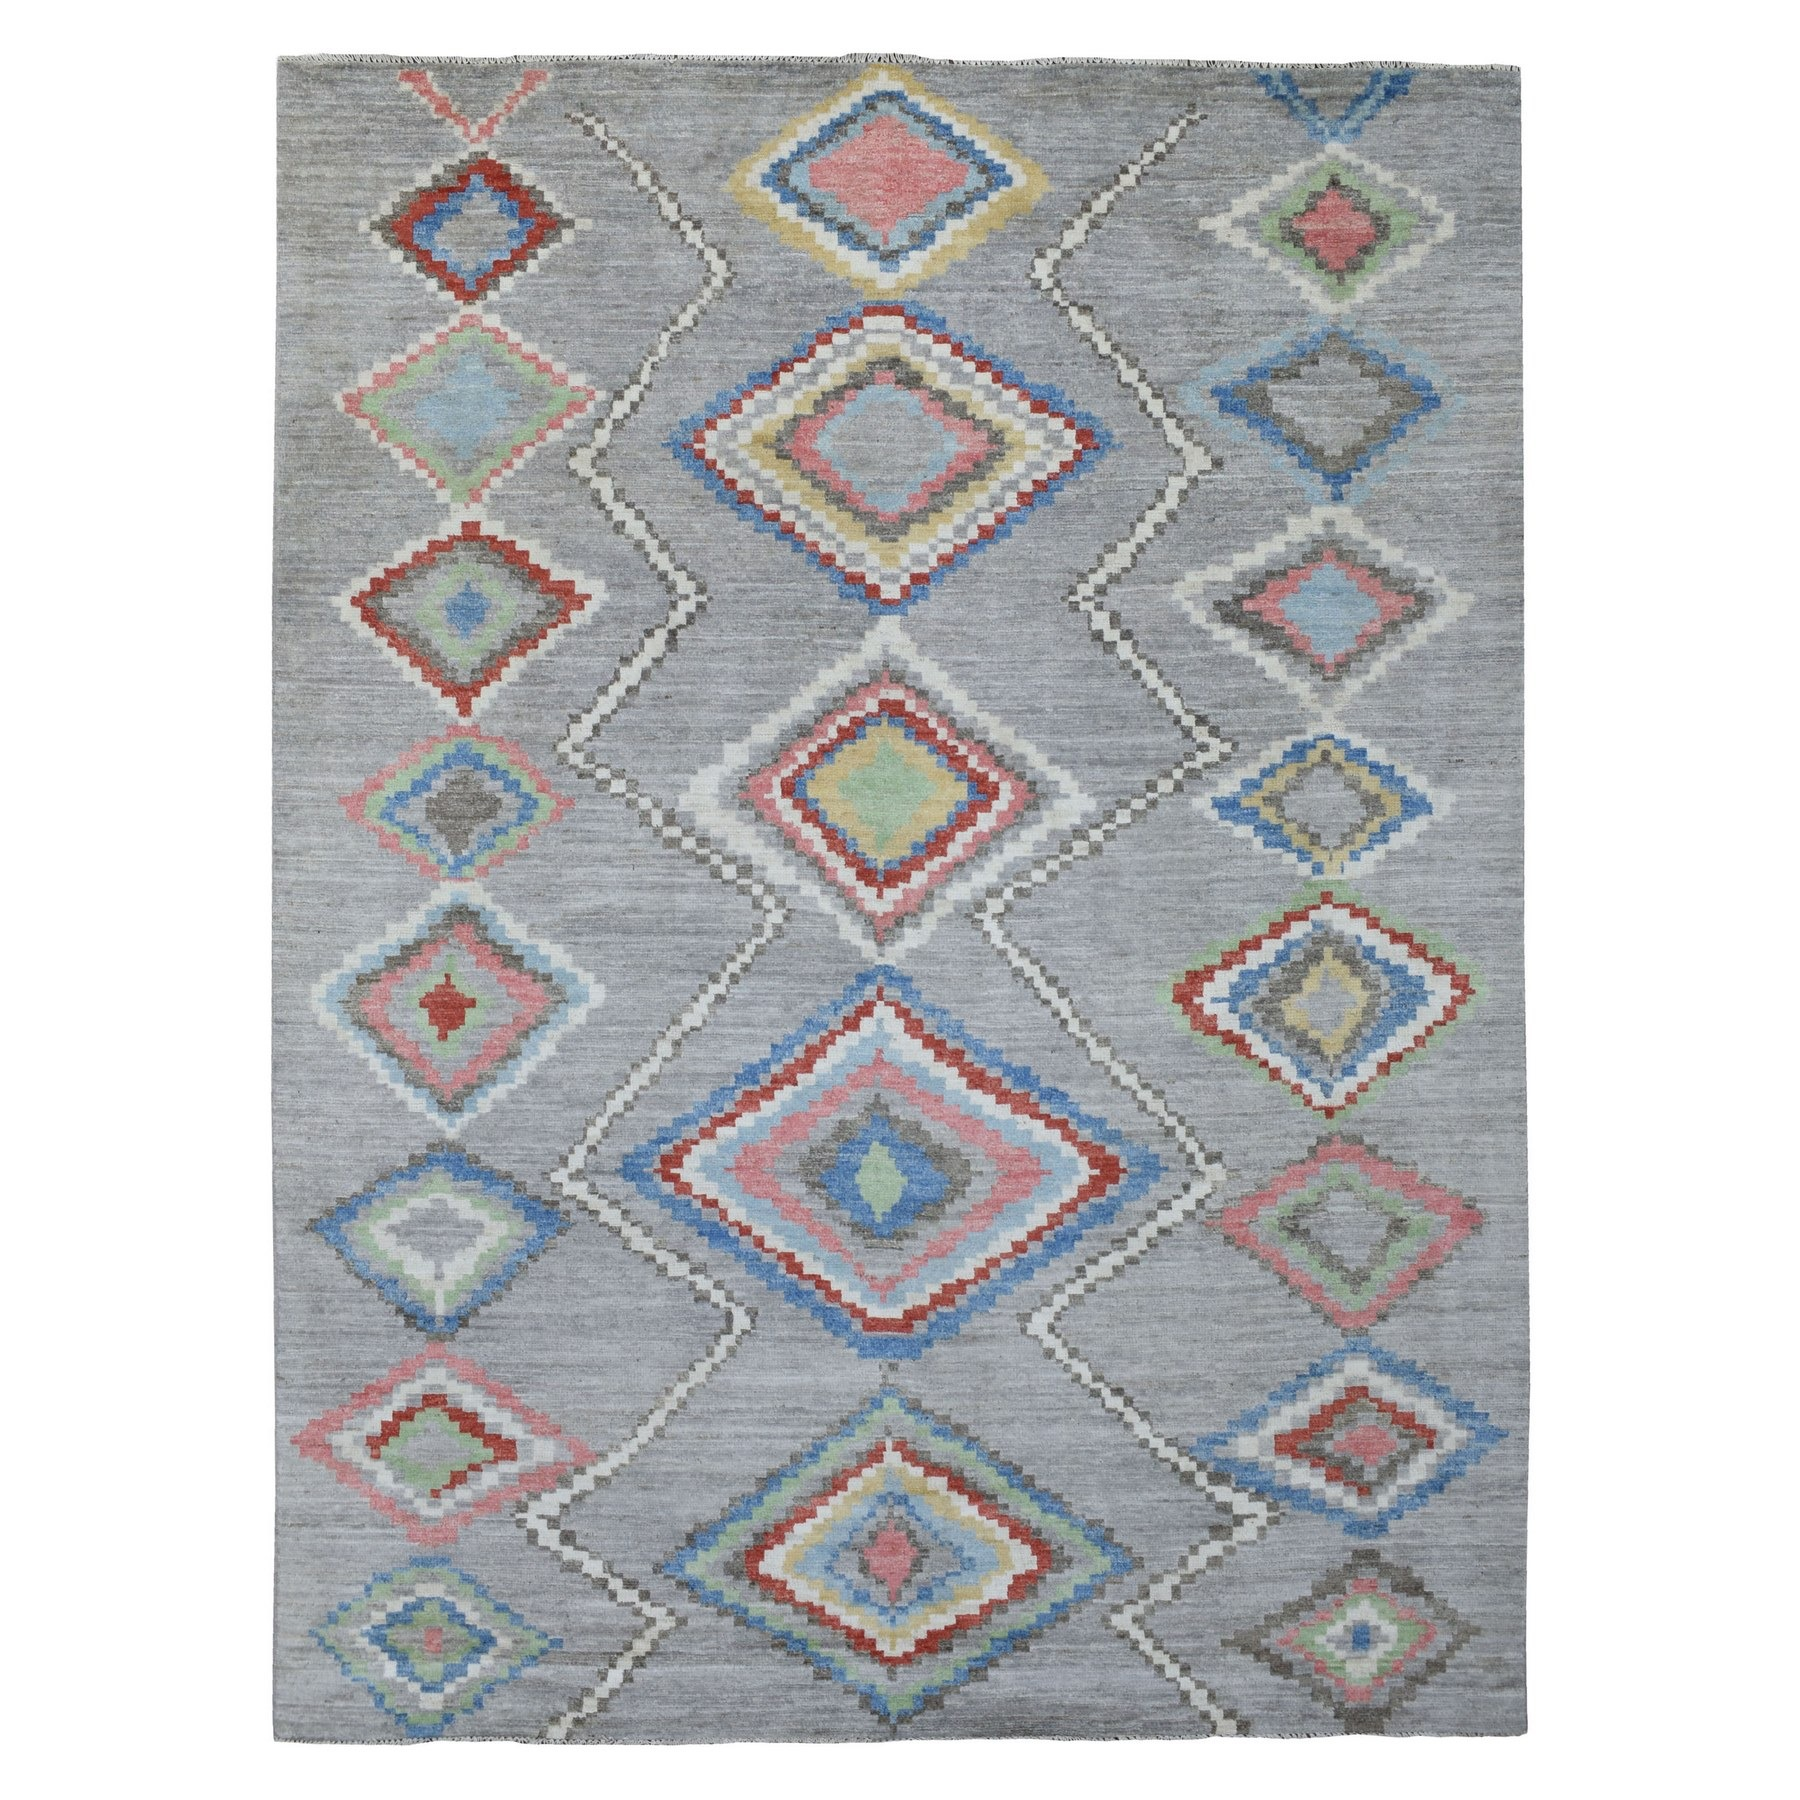 Nomadic And Village Collection Hand Knotted Grey Rug No: 1136438